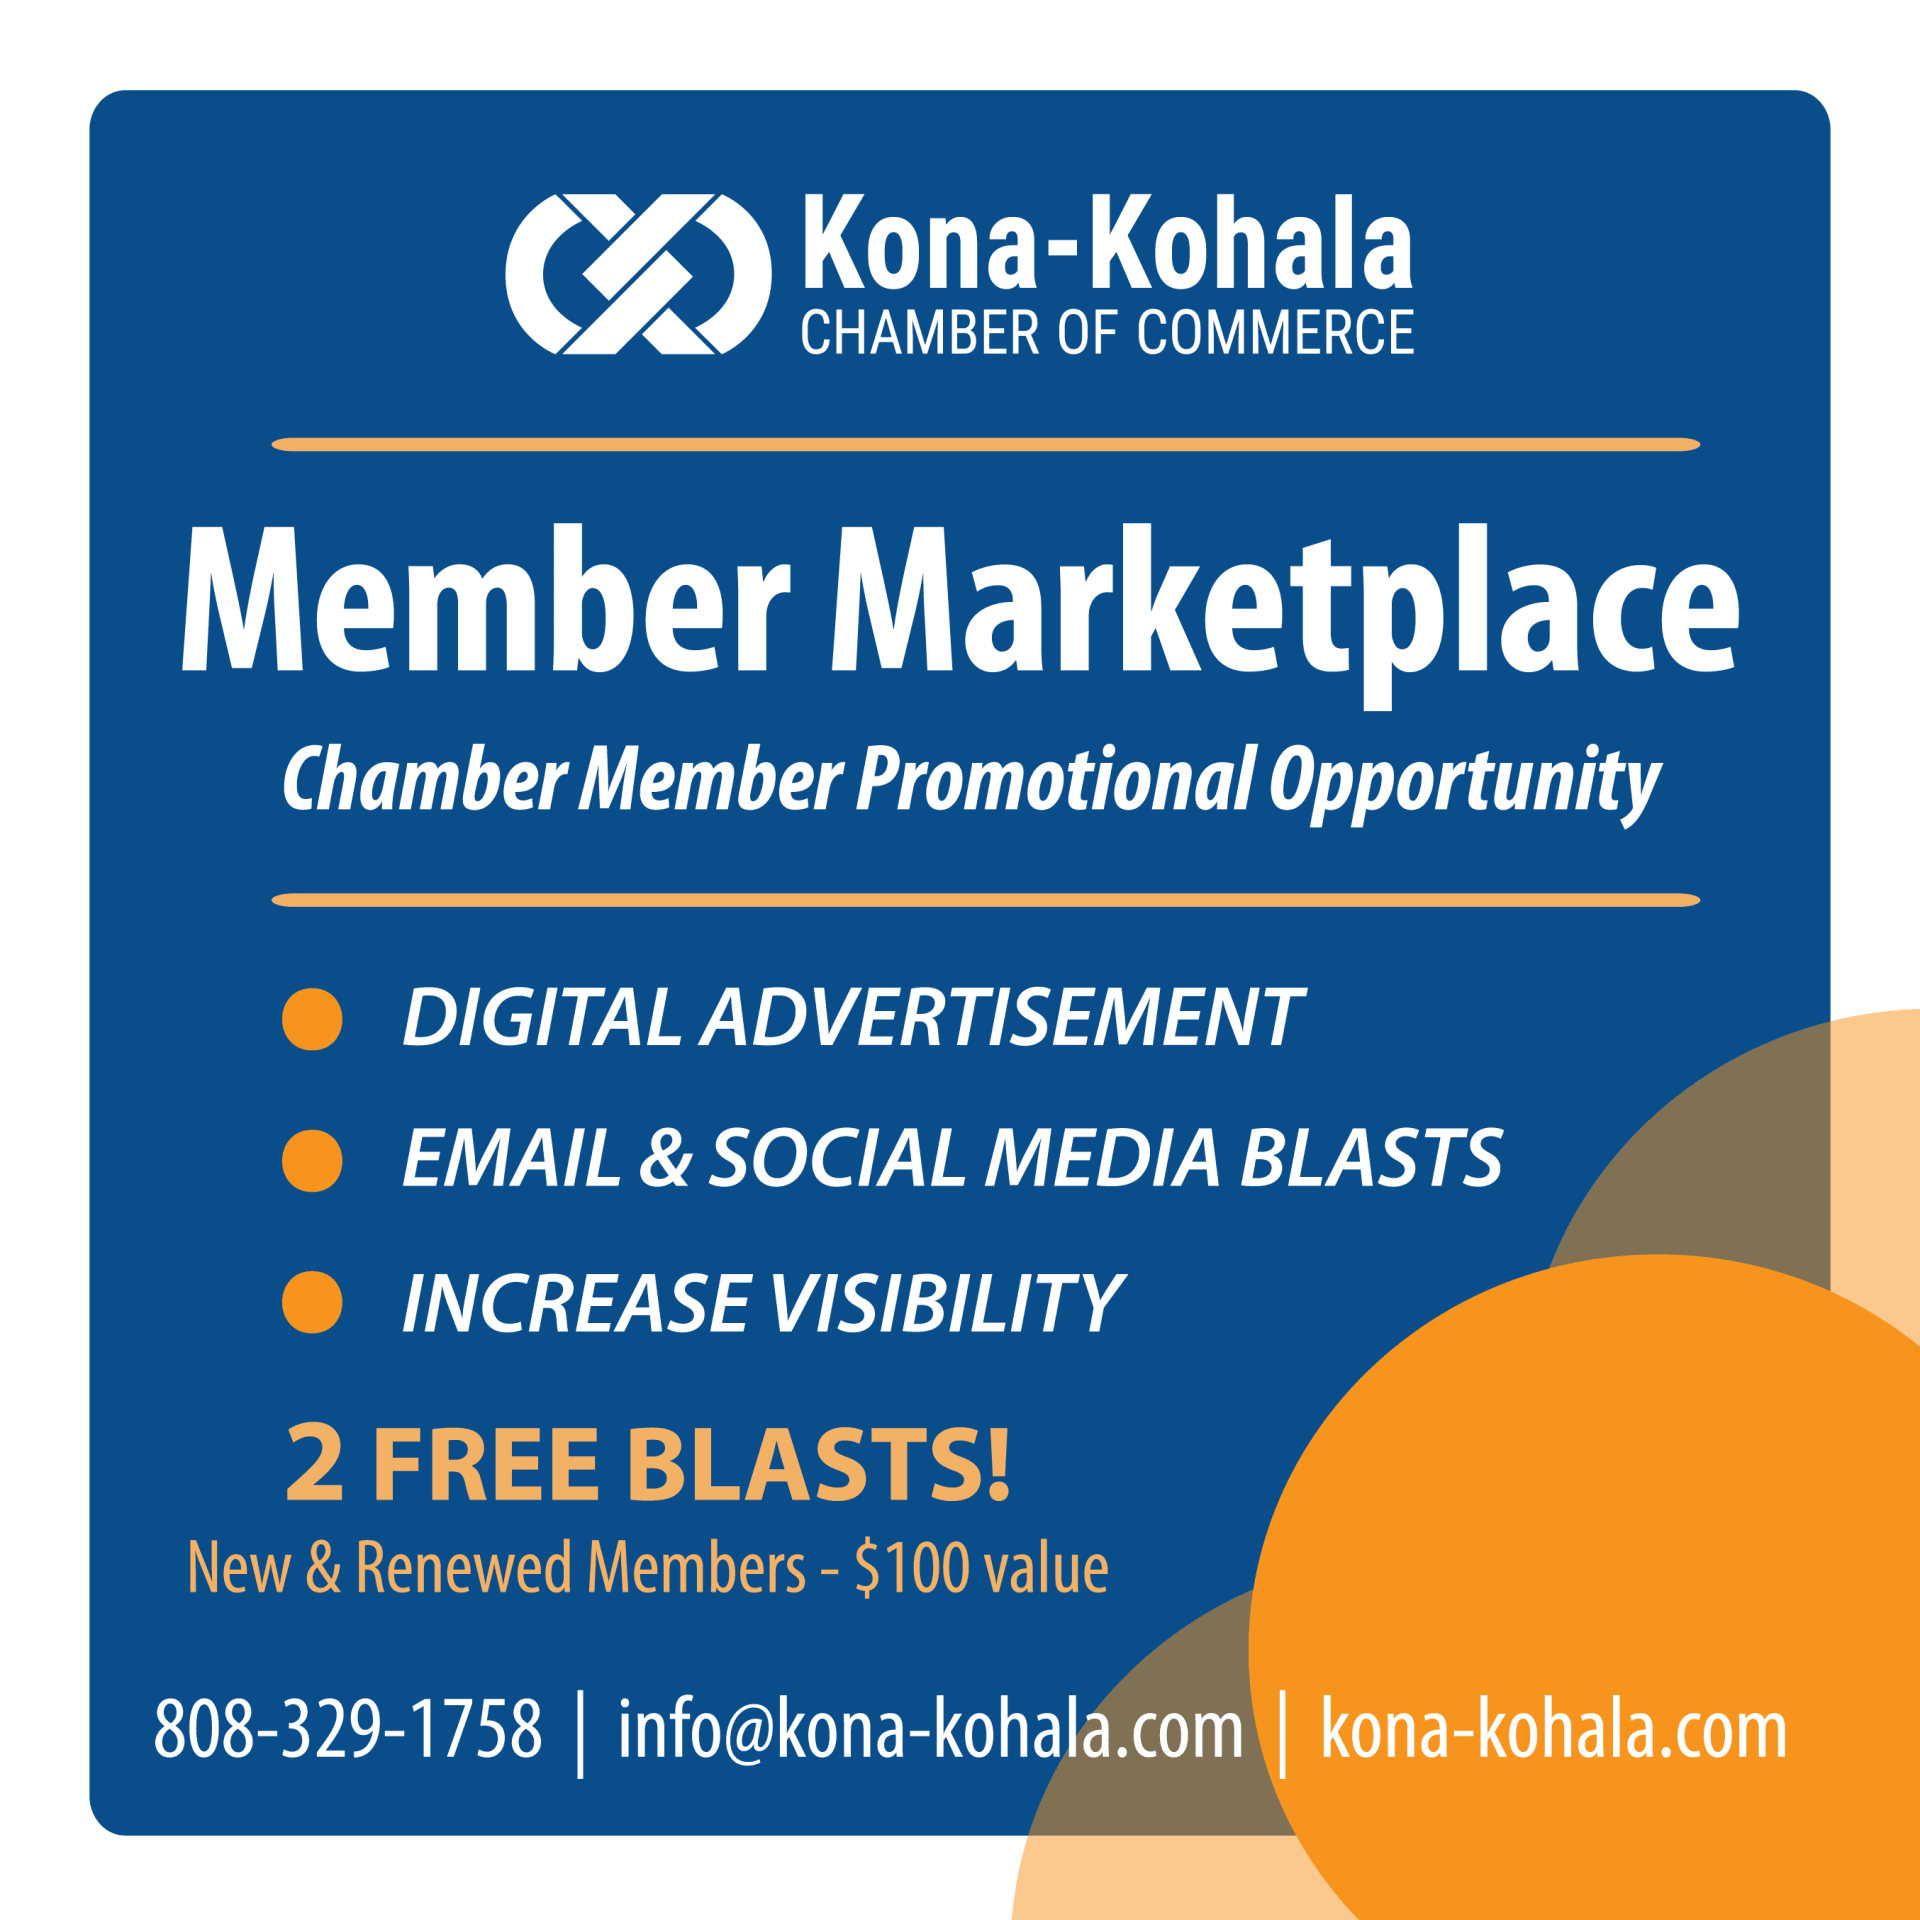 Member-Marketplace-Square-2020-w1920.png